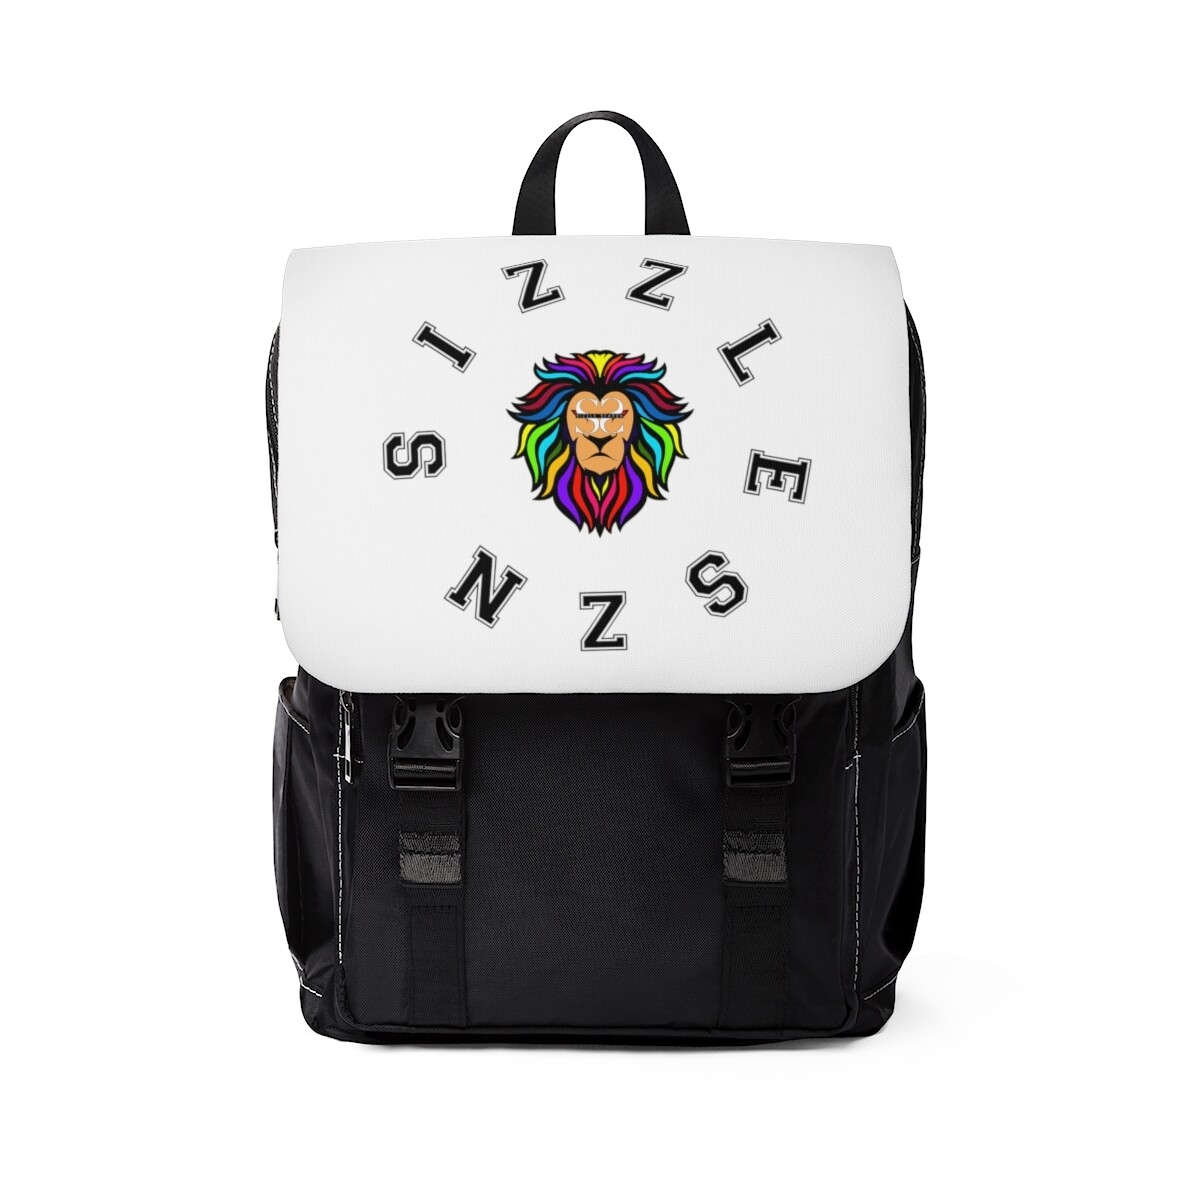 Sizzle Szn Casual Shoulder Backpack